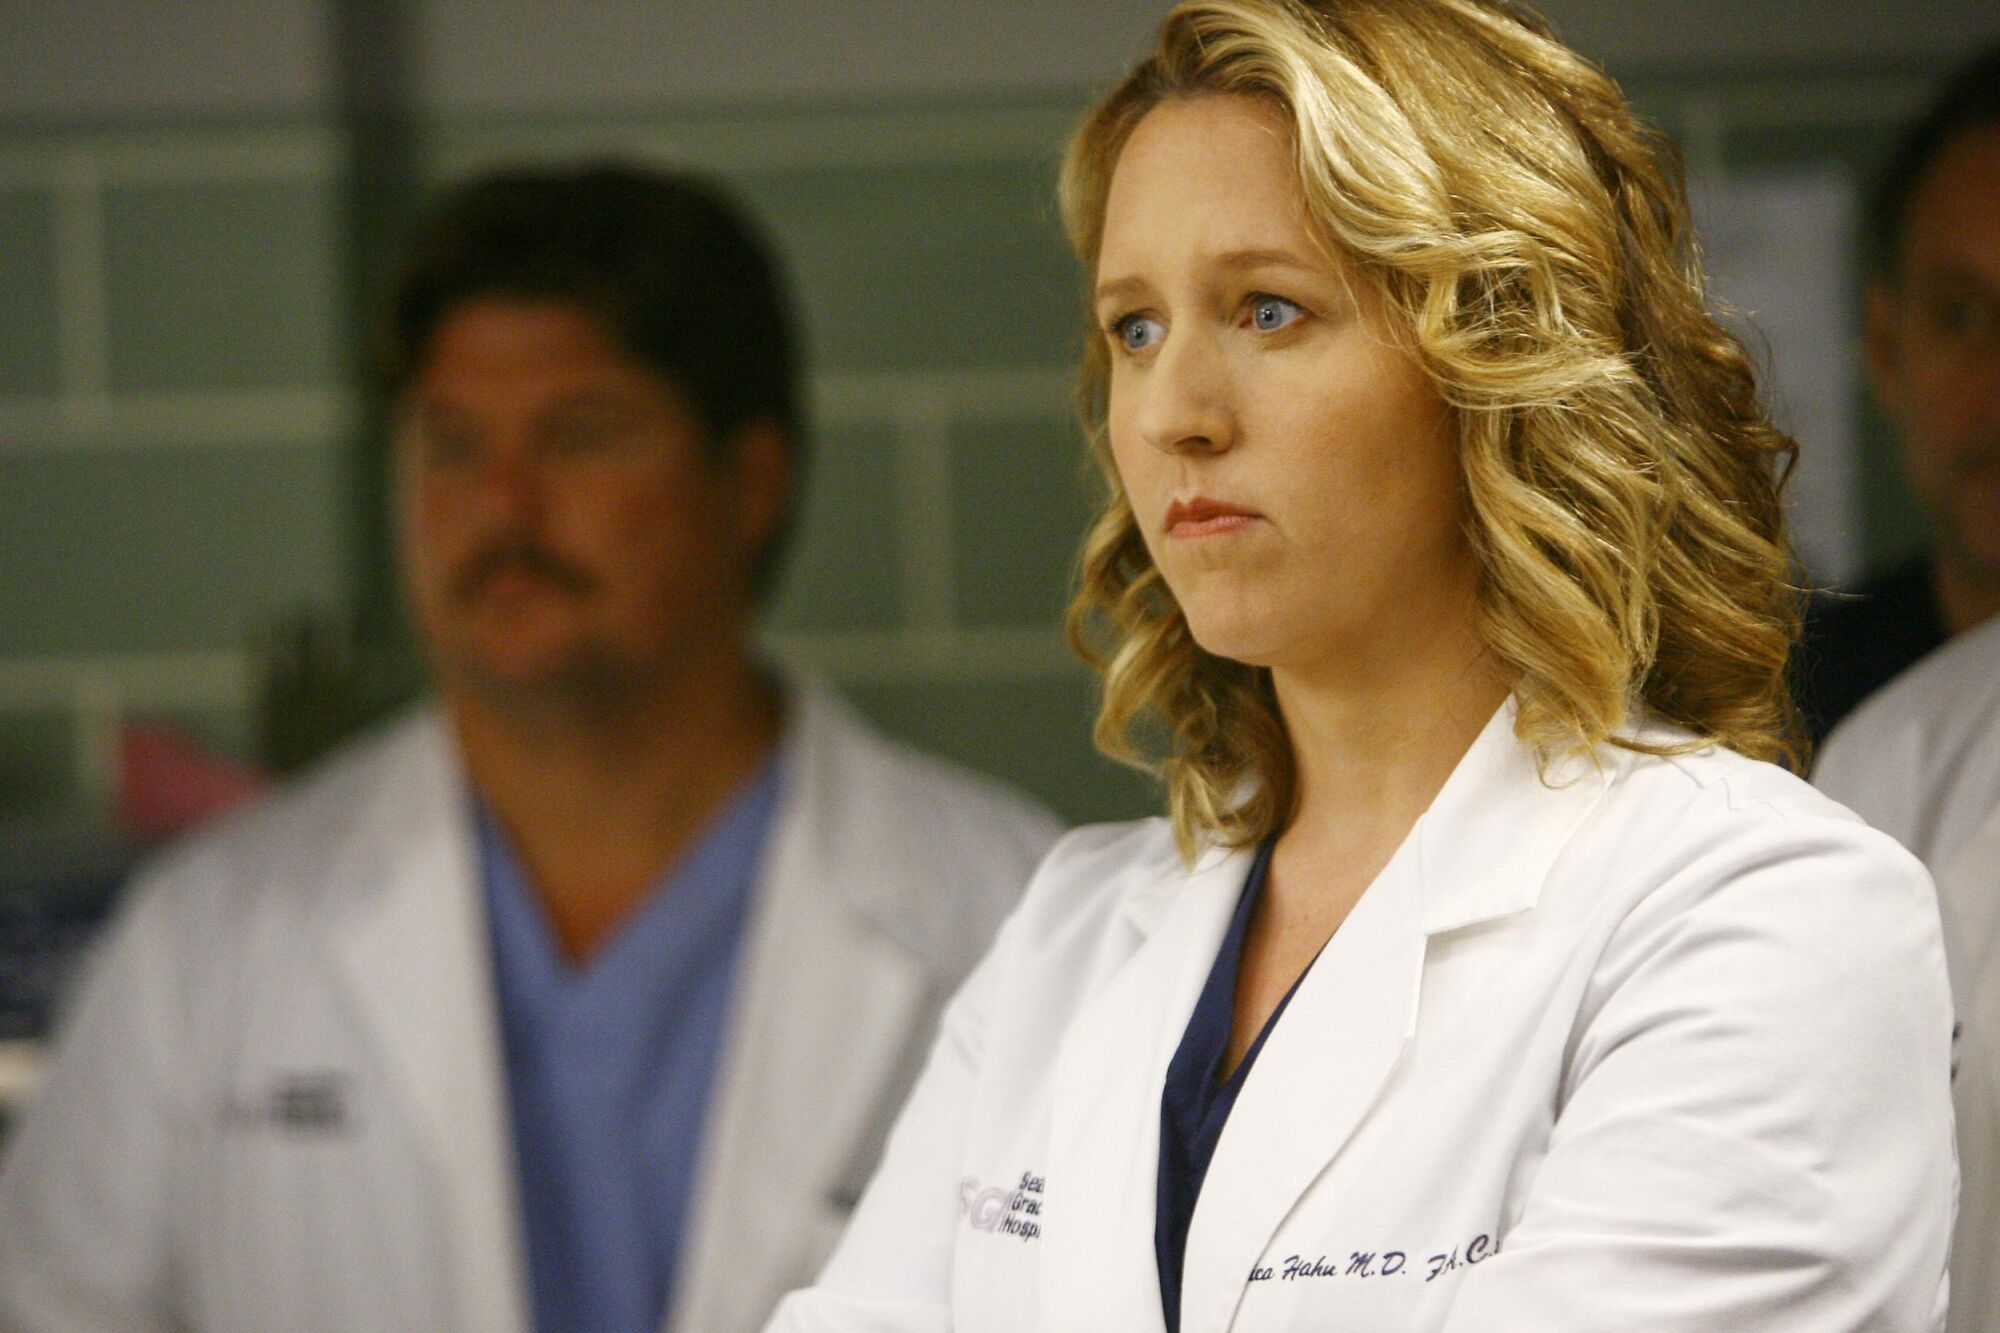 Erica Hahn Greys Anatomy Universe Wiki Fandom Powered By Wikia